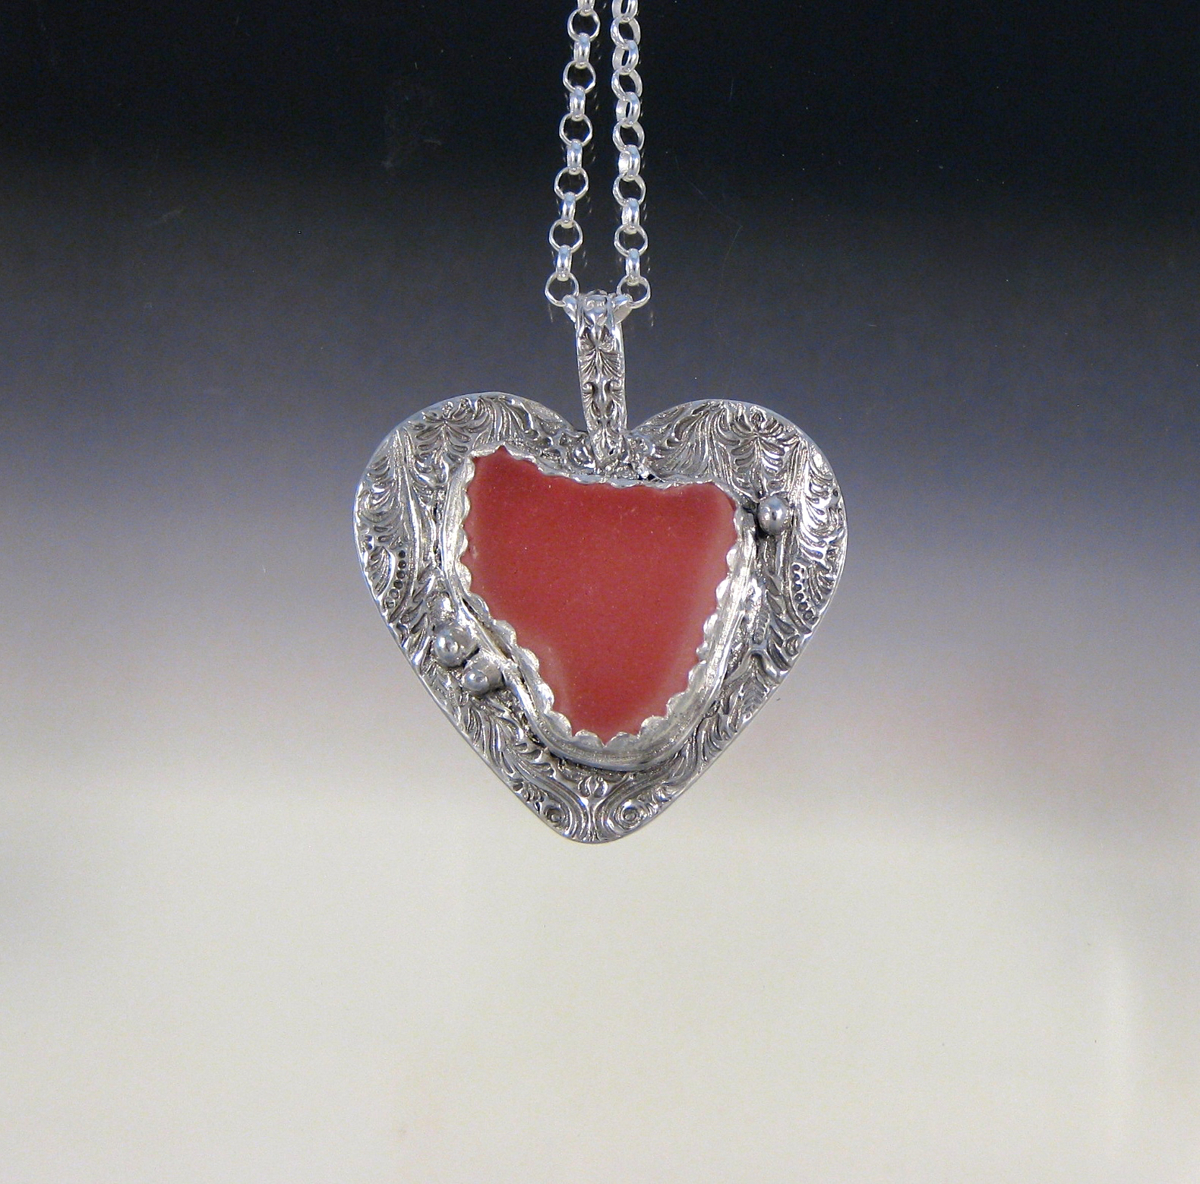 P4977 - Big pink heart pendant (large view)